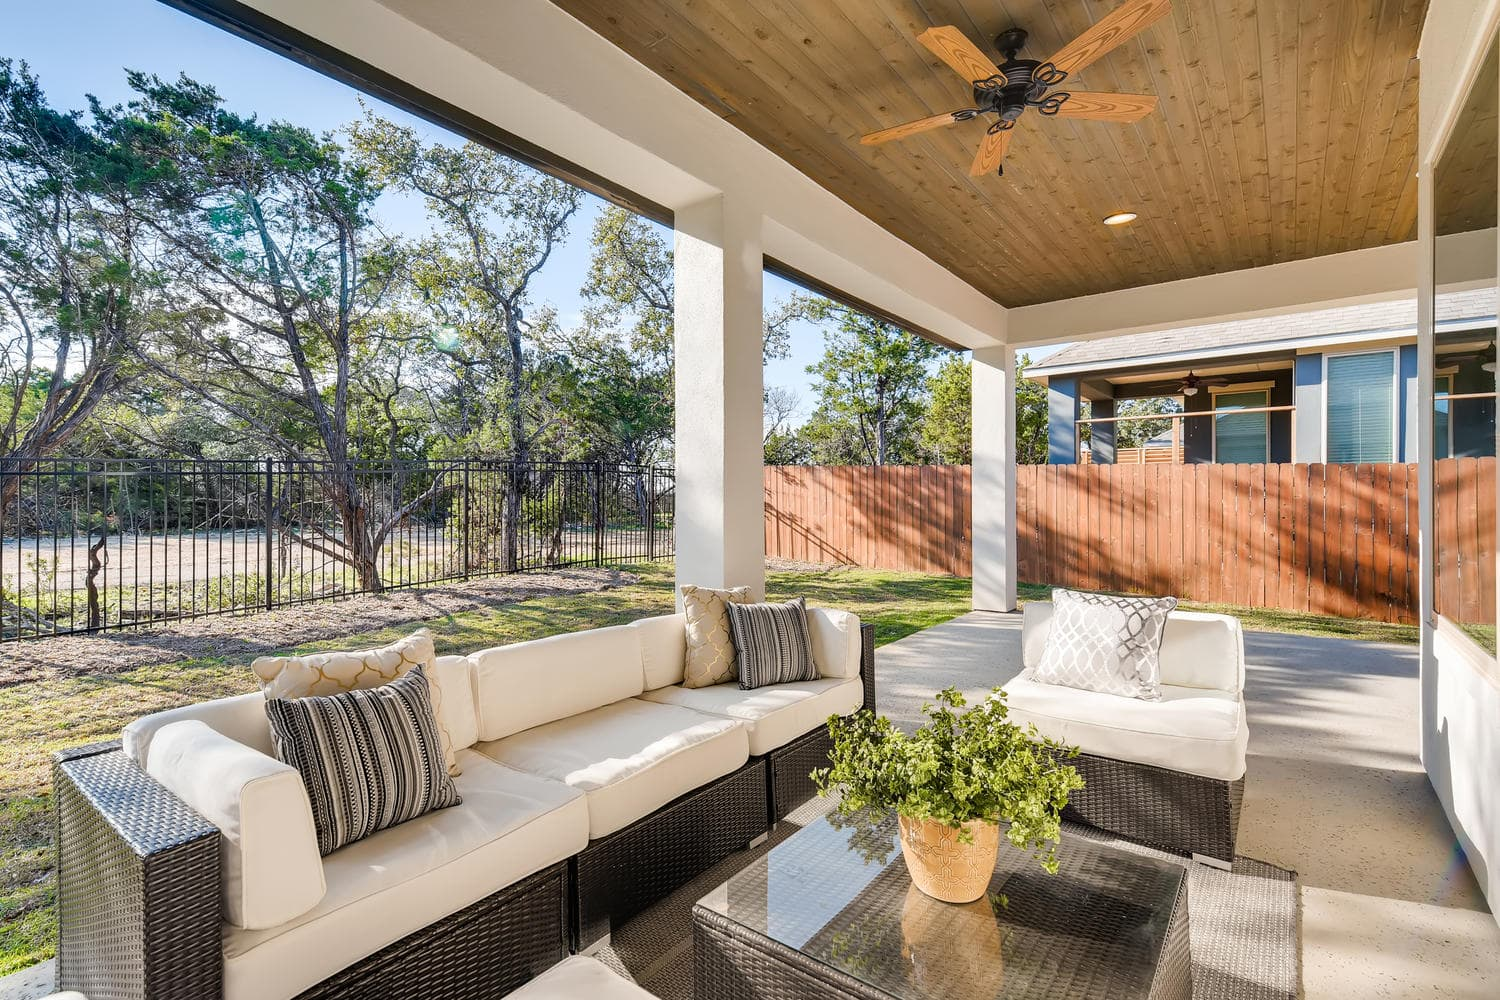 Full home staging in Las Vegas, Nevada, featuring a staged back porch